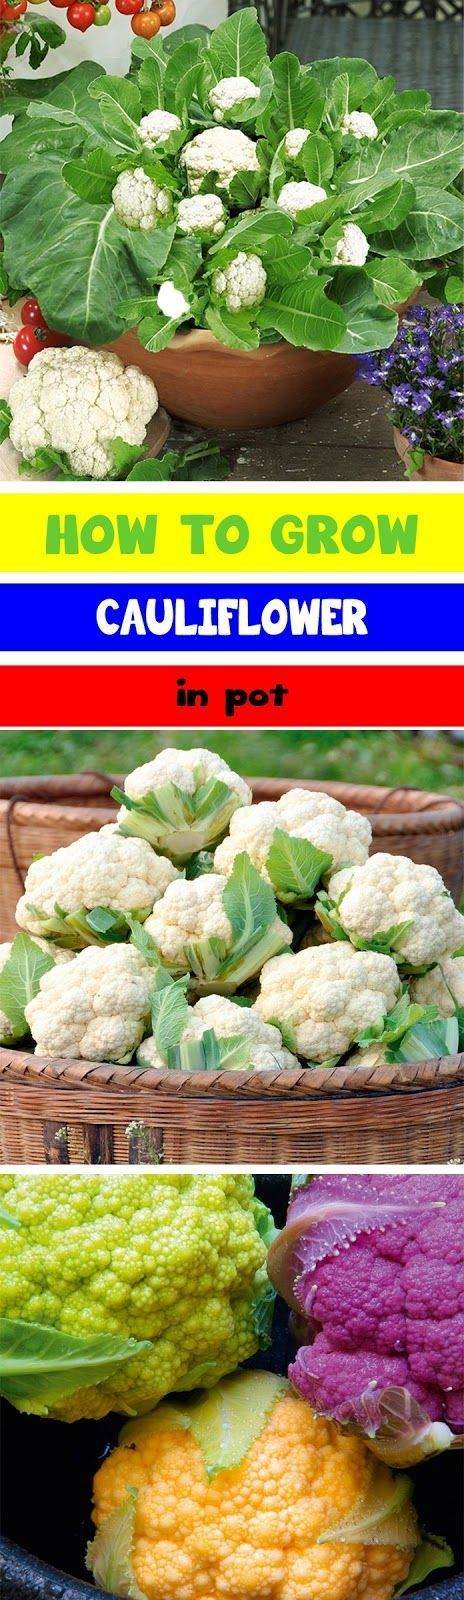 Cauliflower Plant Care When the head or flower (curd) of cauliflower becomes 2-3 inches in diameter (this is unnecessary for colored varieties), cover it with the inner leaves by breaking or tying them over the head. #wintervegetablegardening